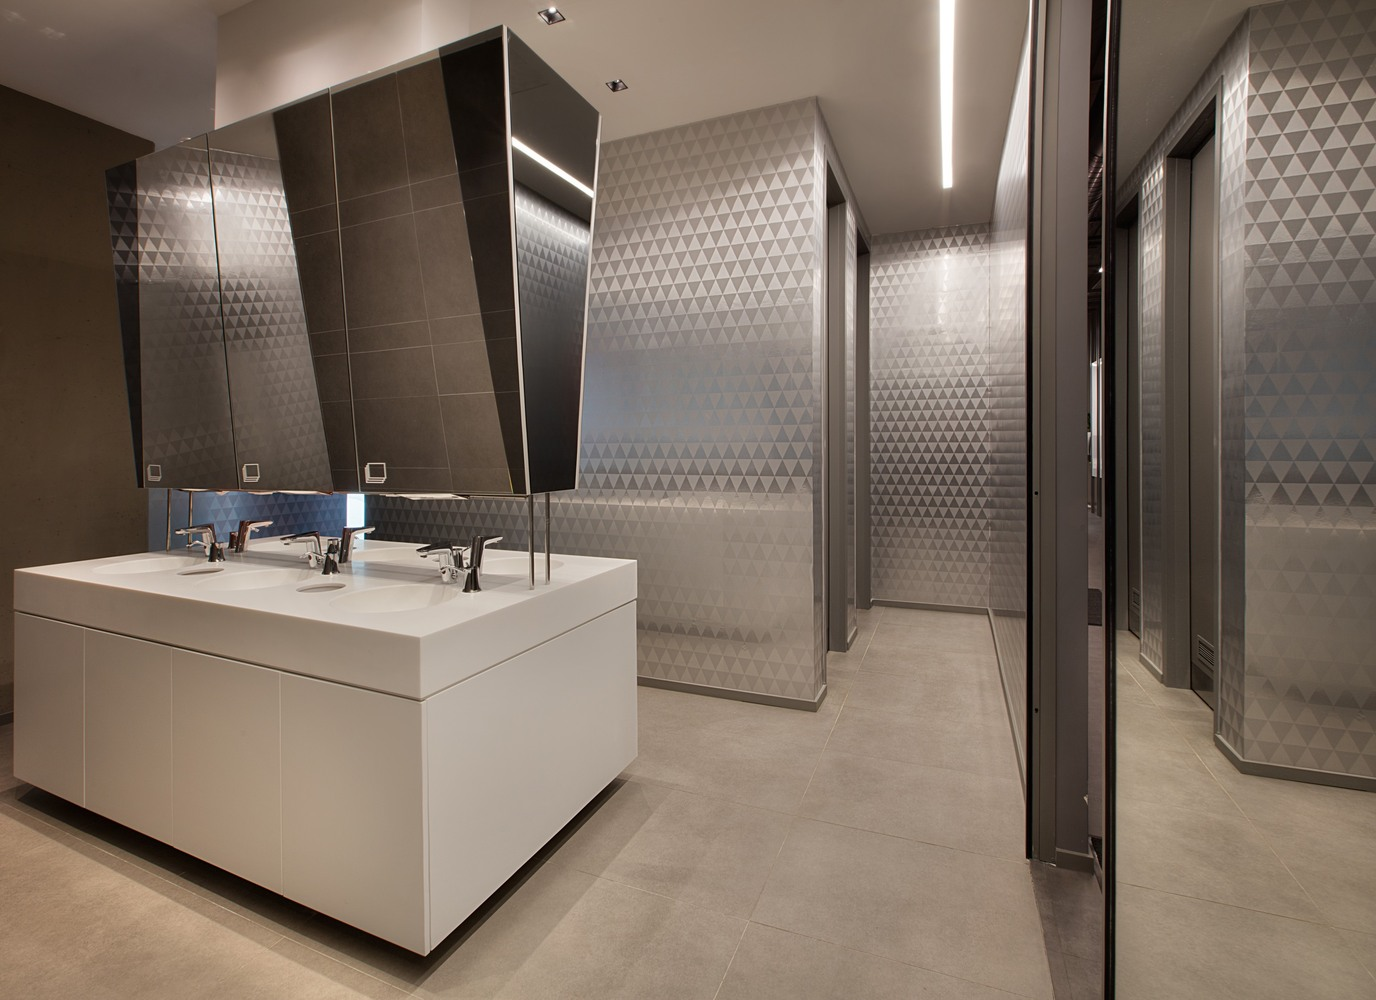 Gallery of philip morris sabanci sales and marketing inc for New washroom designs